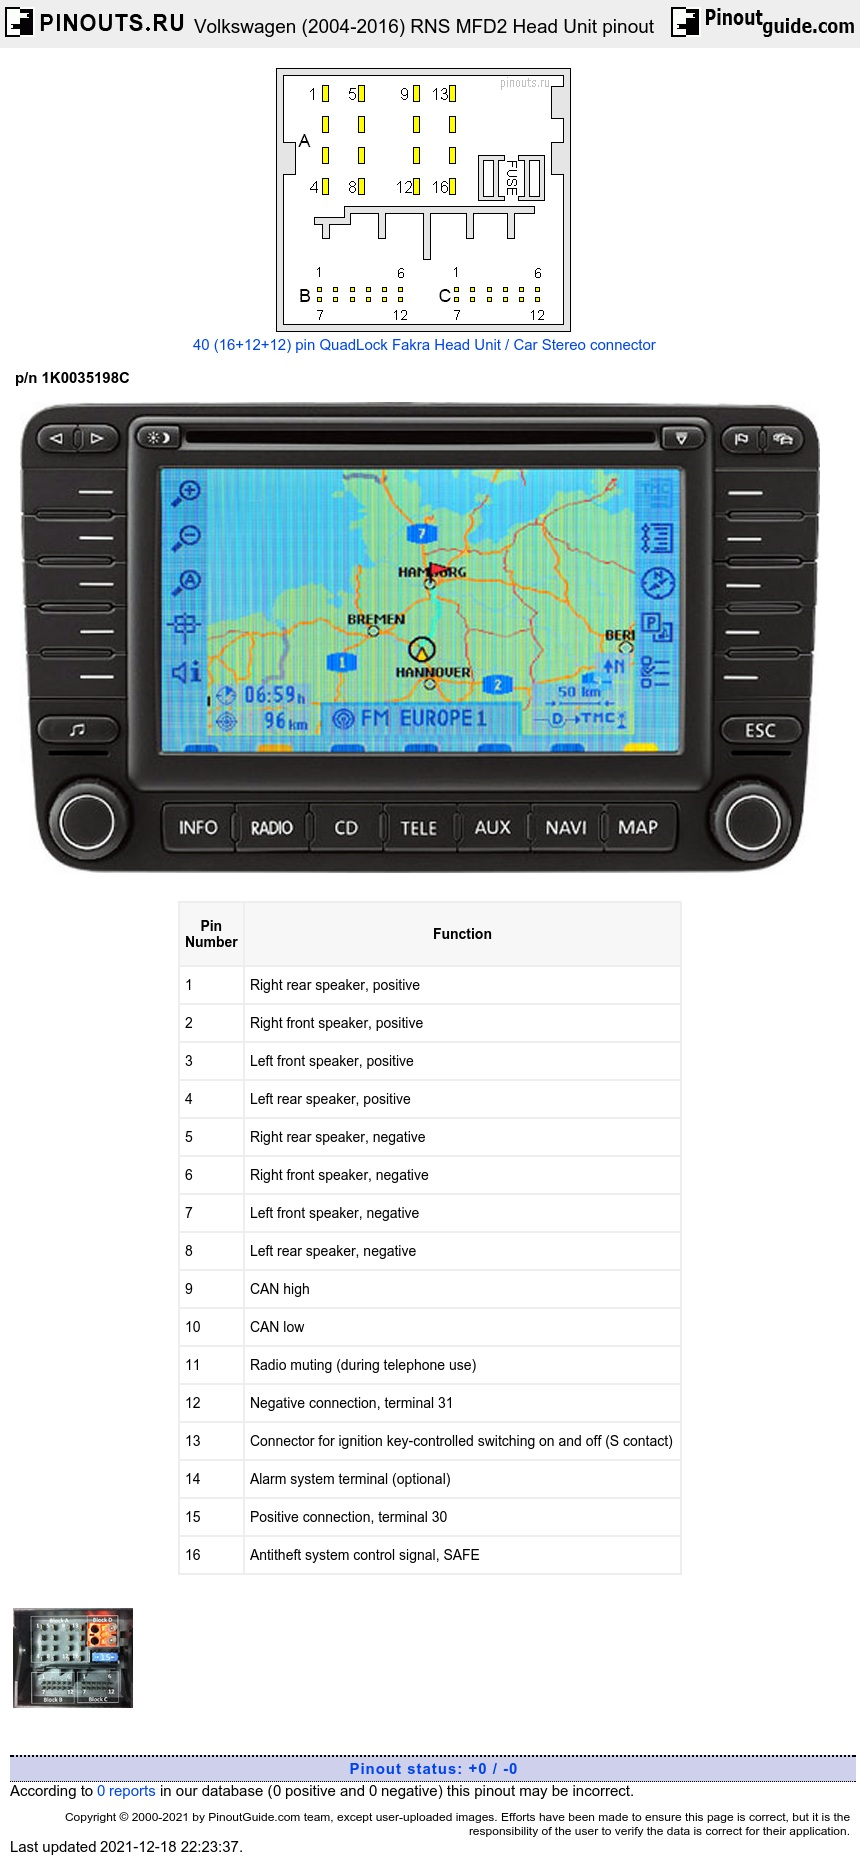 Volkswagen RNS MFD2 Head Unit diagram